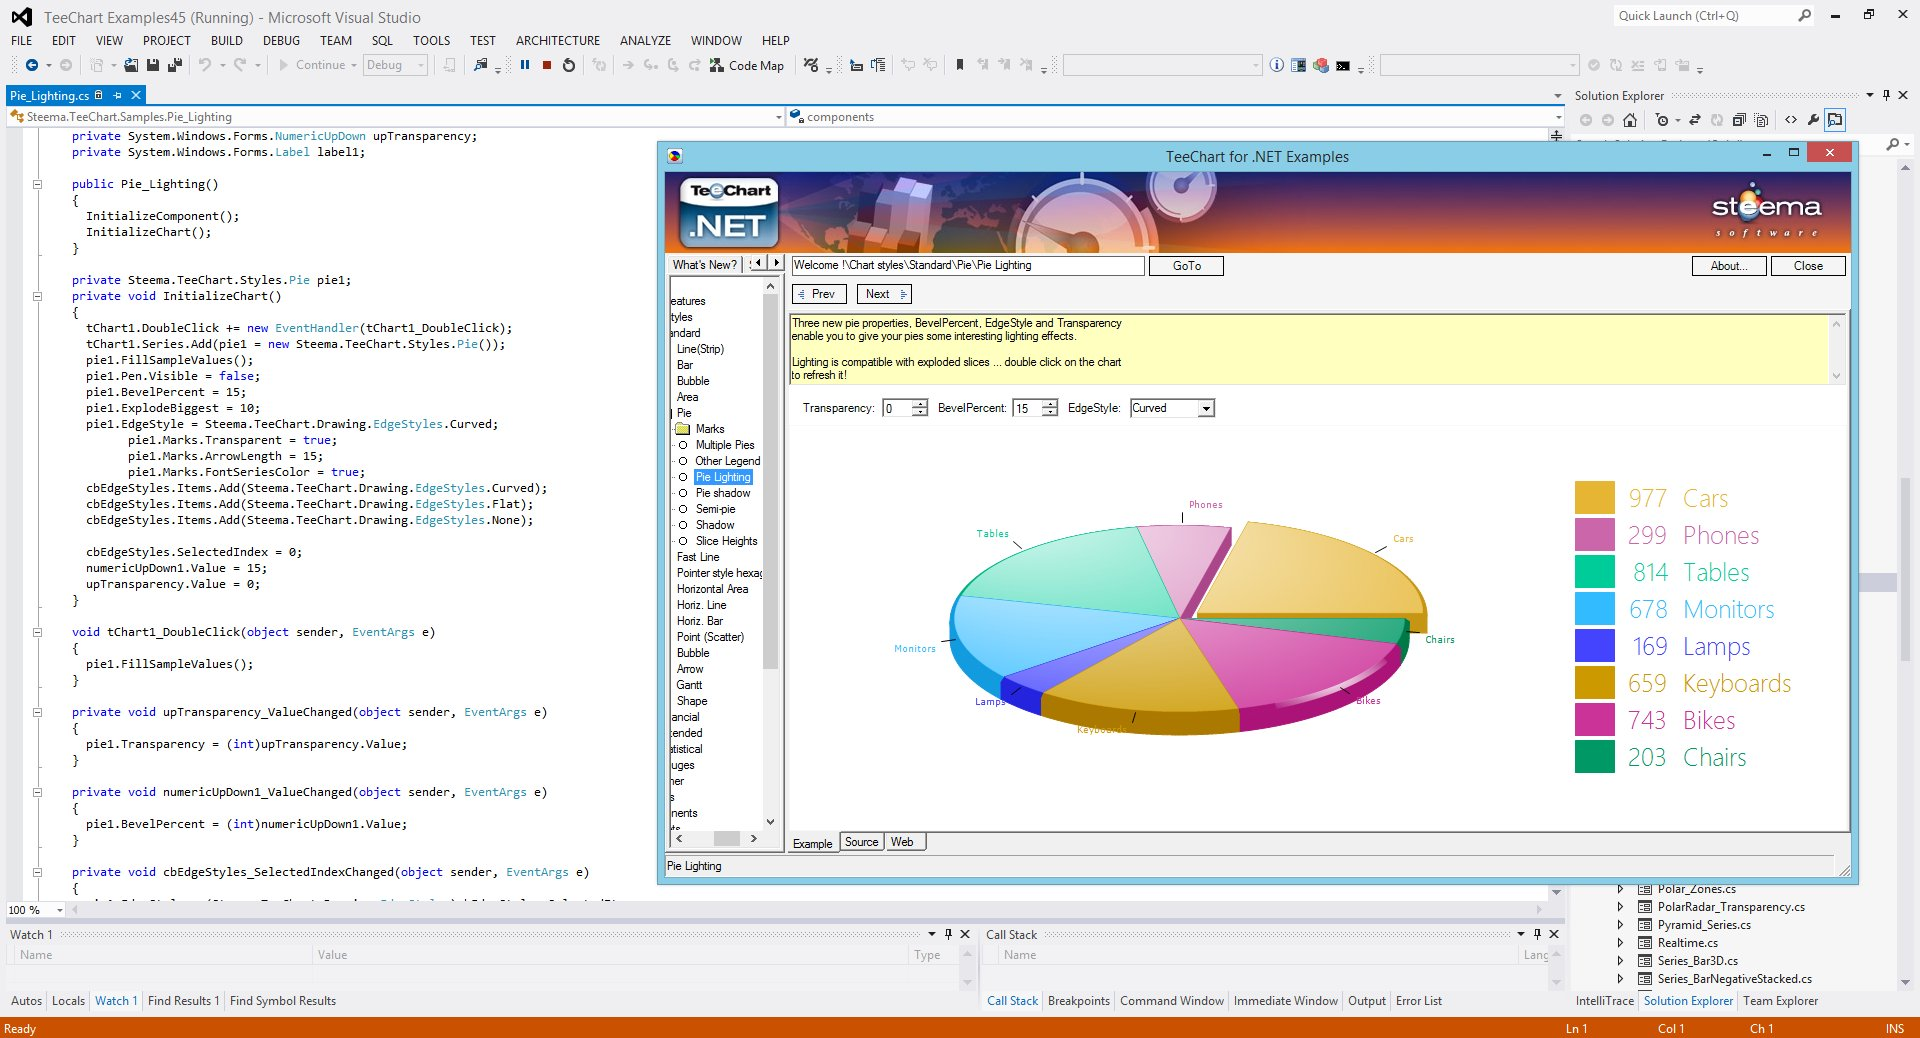 Lighting effects display on a Pie Chart.